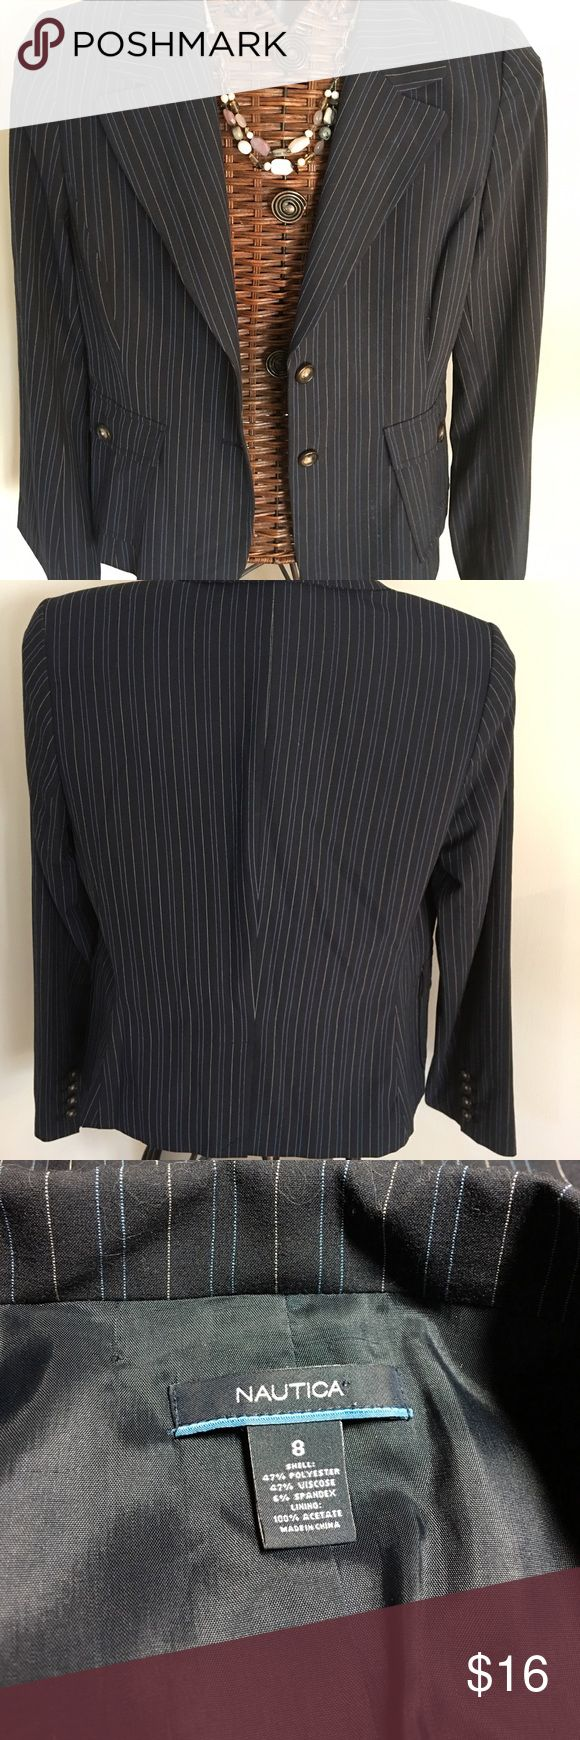 """Nautica Striped Blazer Single breasted fully lined blazer with two front pockets that button closed. Horn buttons. Navy with gold and light blue pinstripes. 19"""" across bust, 23"""" long, 25"""" sleeve length. Nautica Jackets & Coats Blazers"""